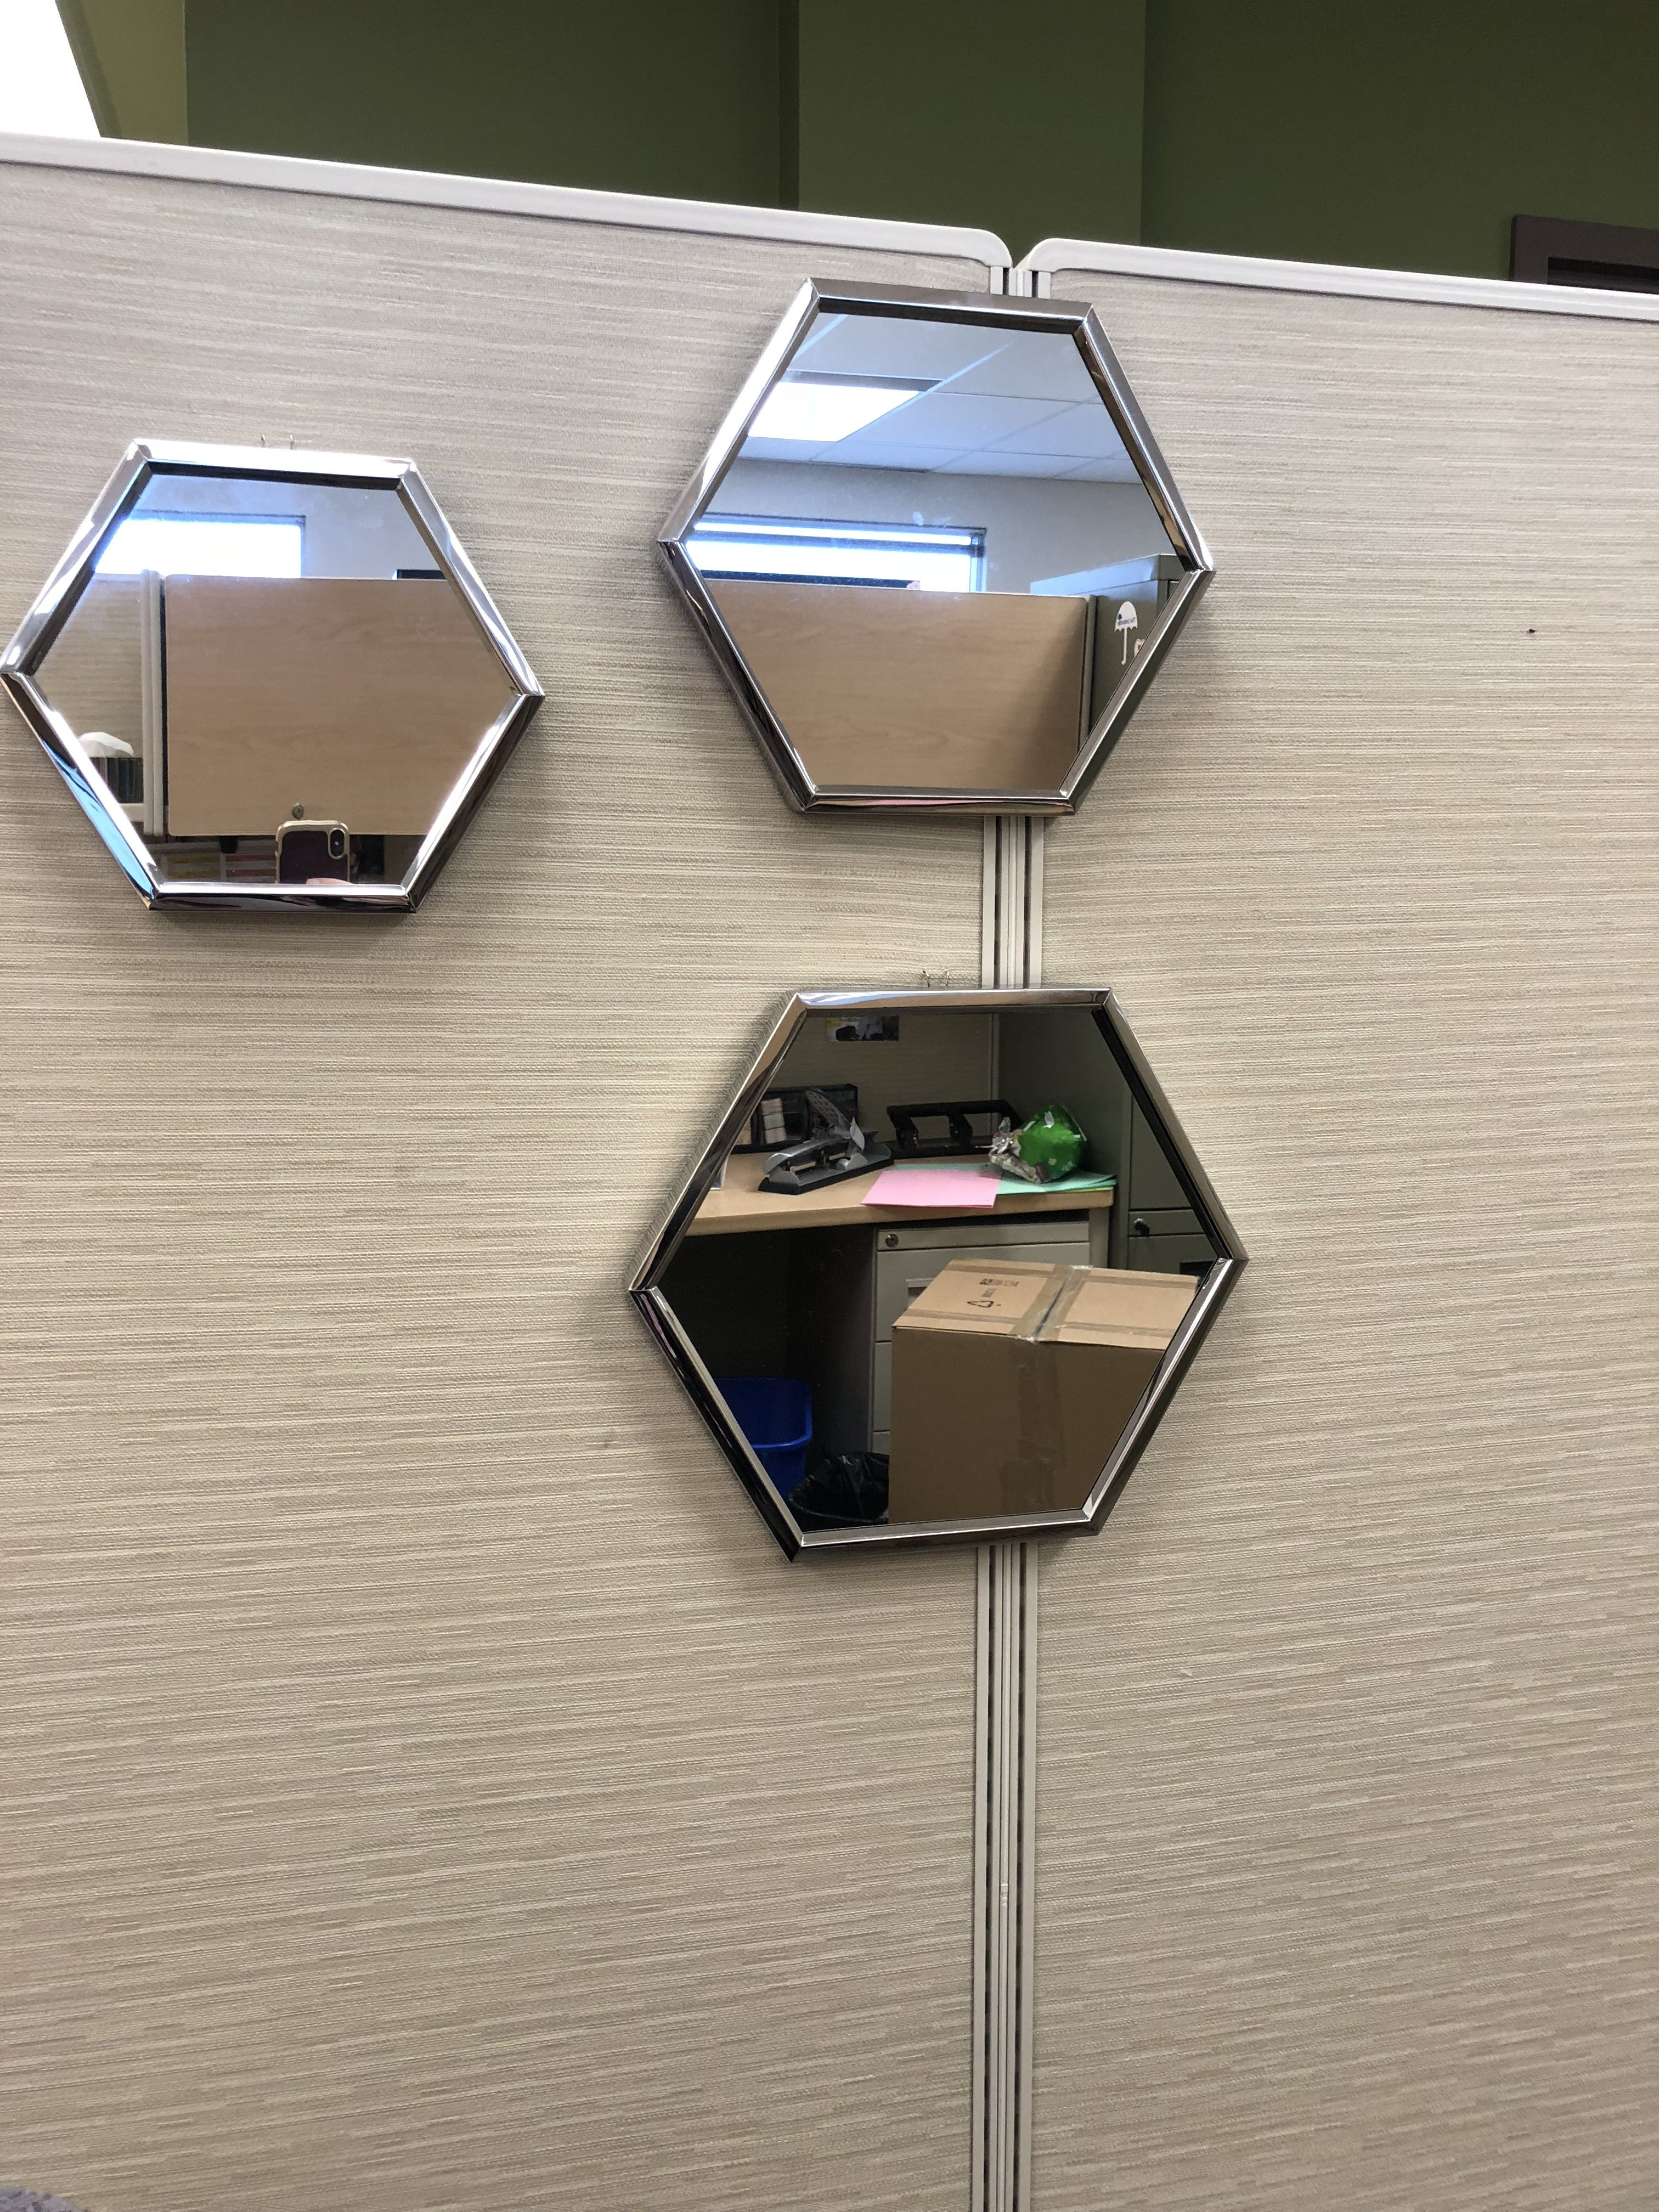 Easy Way To Jazz Up Your Cubicle At Work Hang Mirrors You Can Buy Cubicle Hooks On Amazon For Cheap Cubic Cubicle Organization Cubicle Decor Cubical Decor